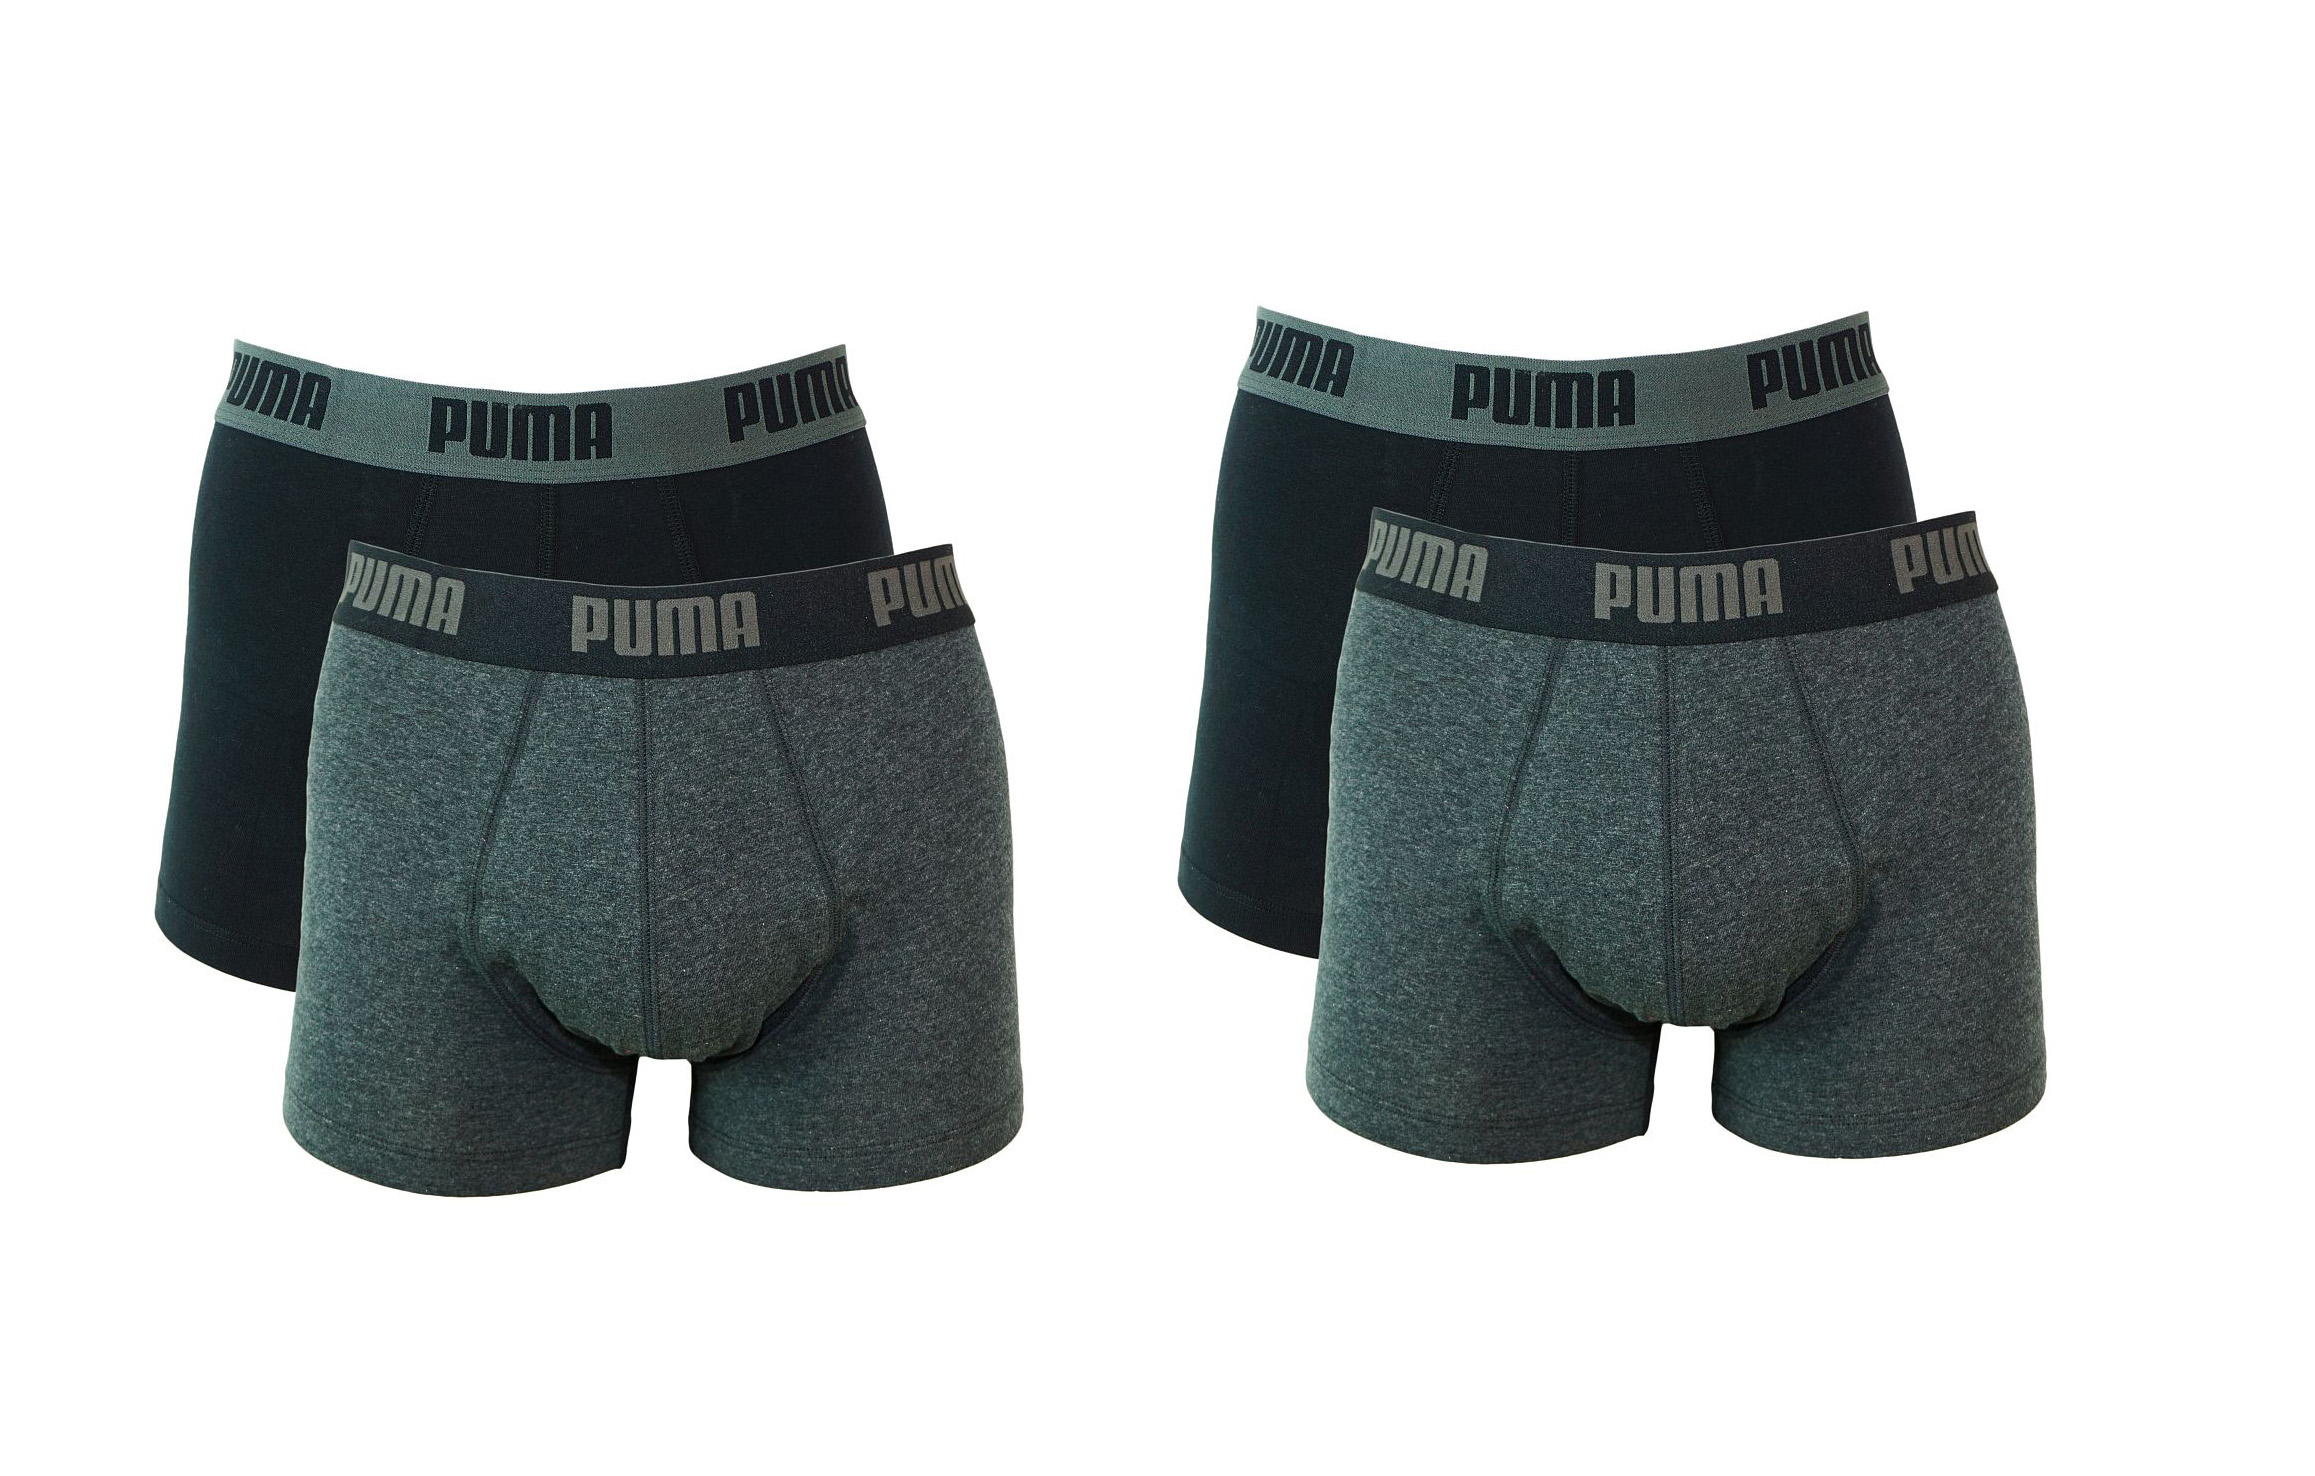 PUMA Shorts Unterhosen 2 x 2er Pack Trunk 521025001 691 020 dark grey melange, black SF17-PMS2